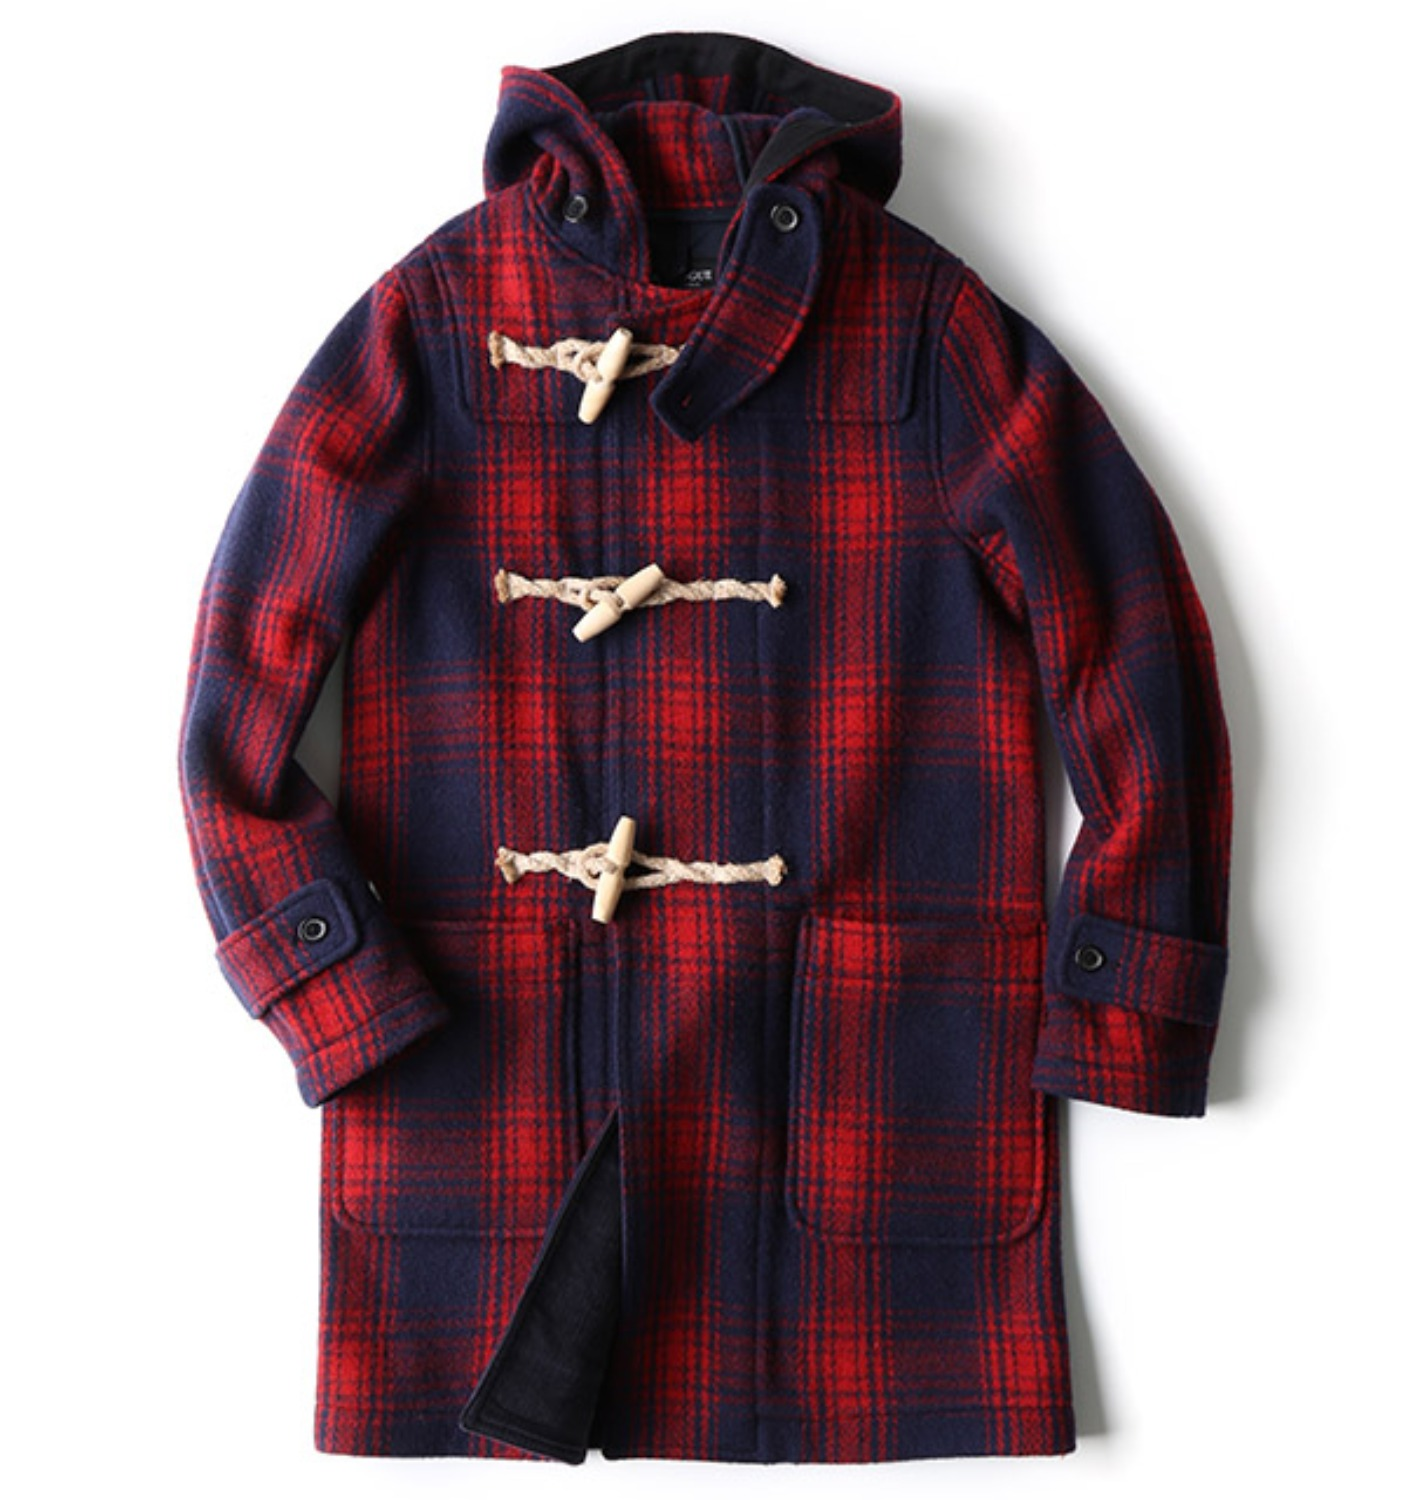 EASTLOGUE X SCULP DUFFLE COAT IN RED CHECK